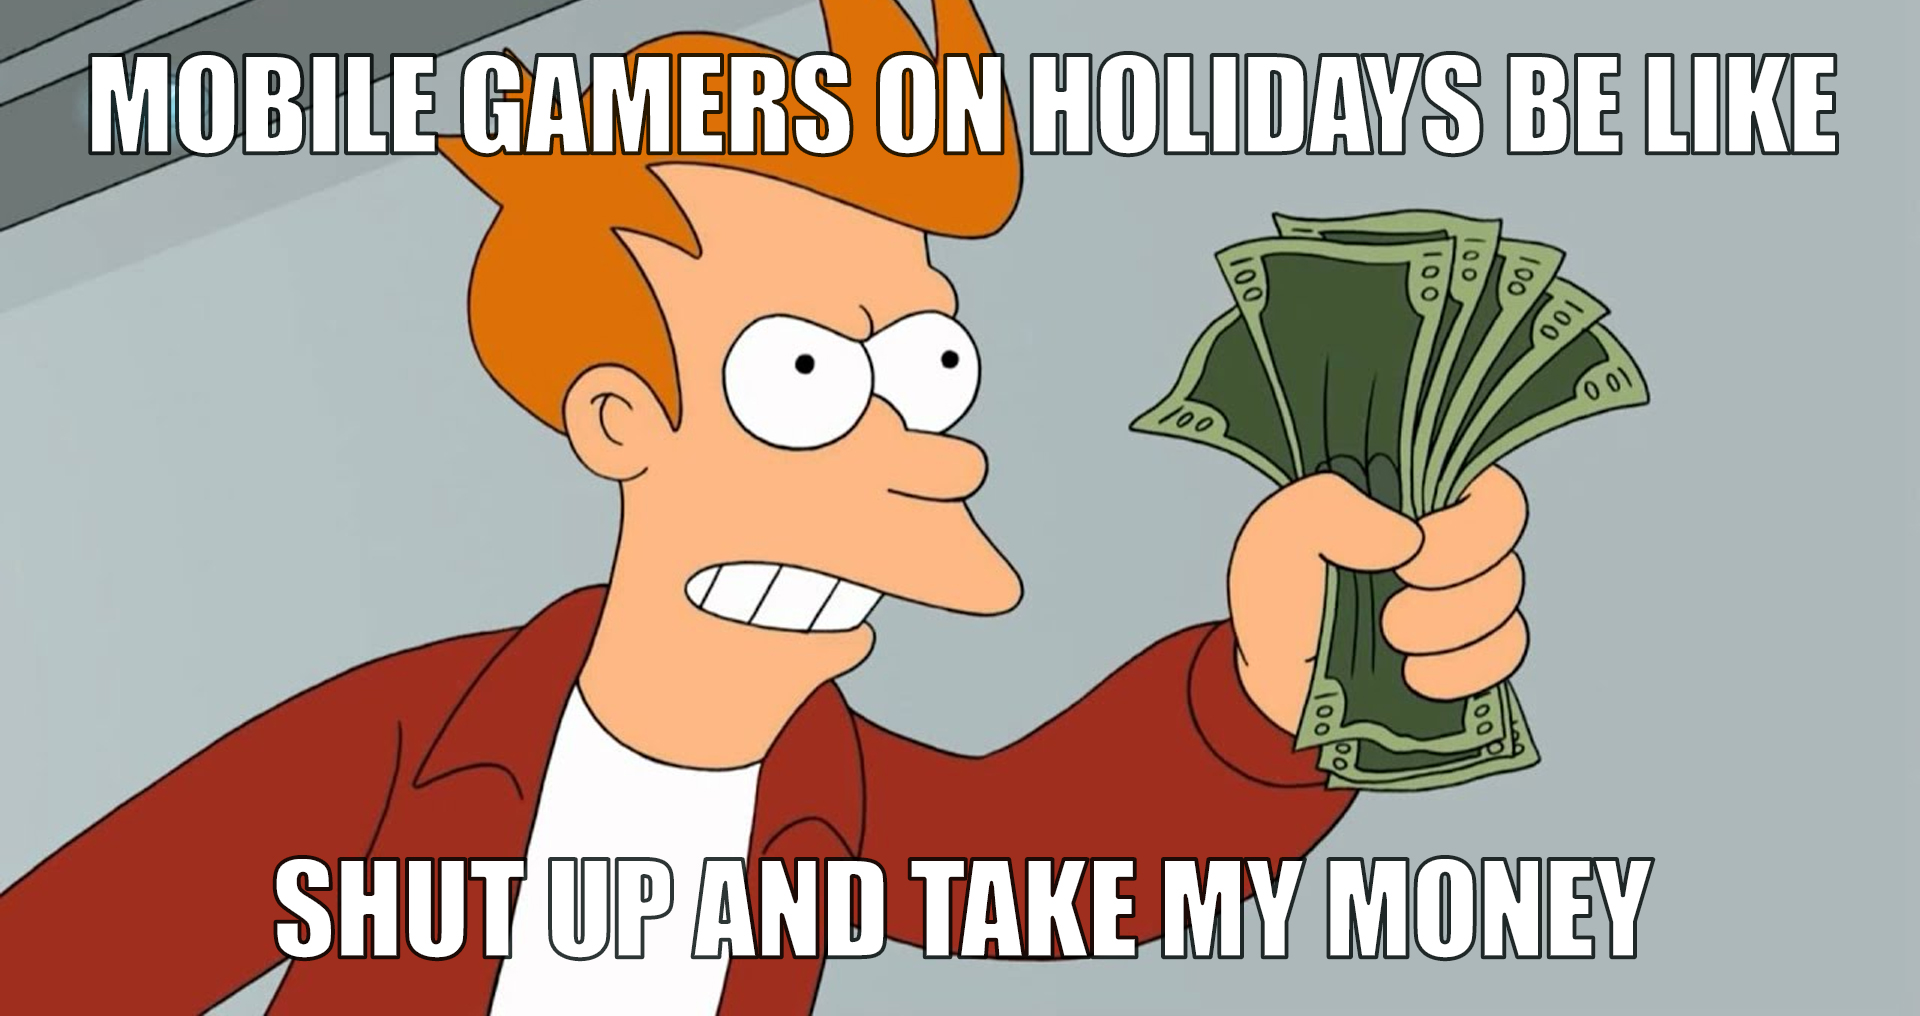 Mobile-gamers-holiday-season-shut-up-take-money